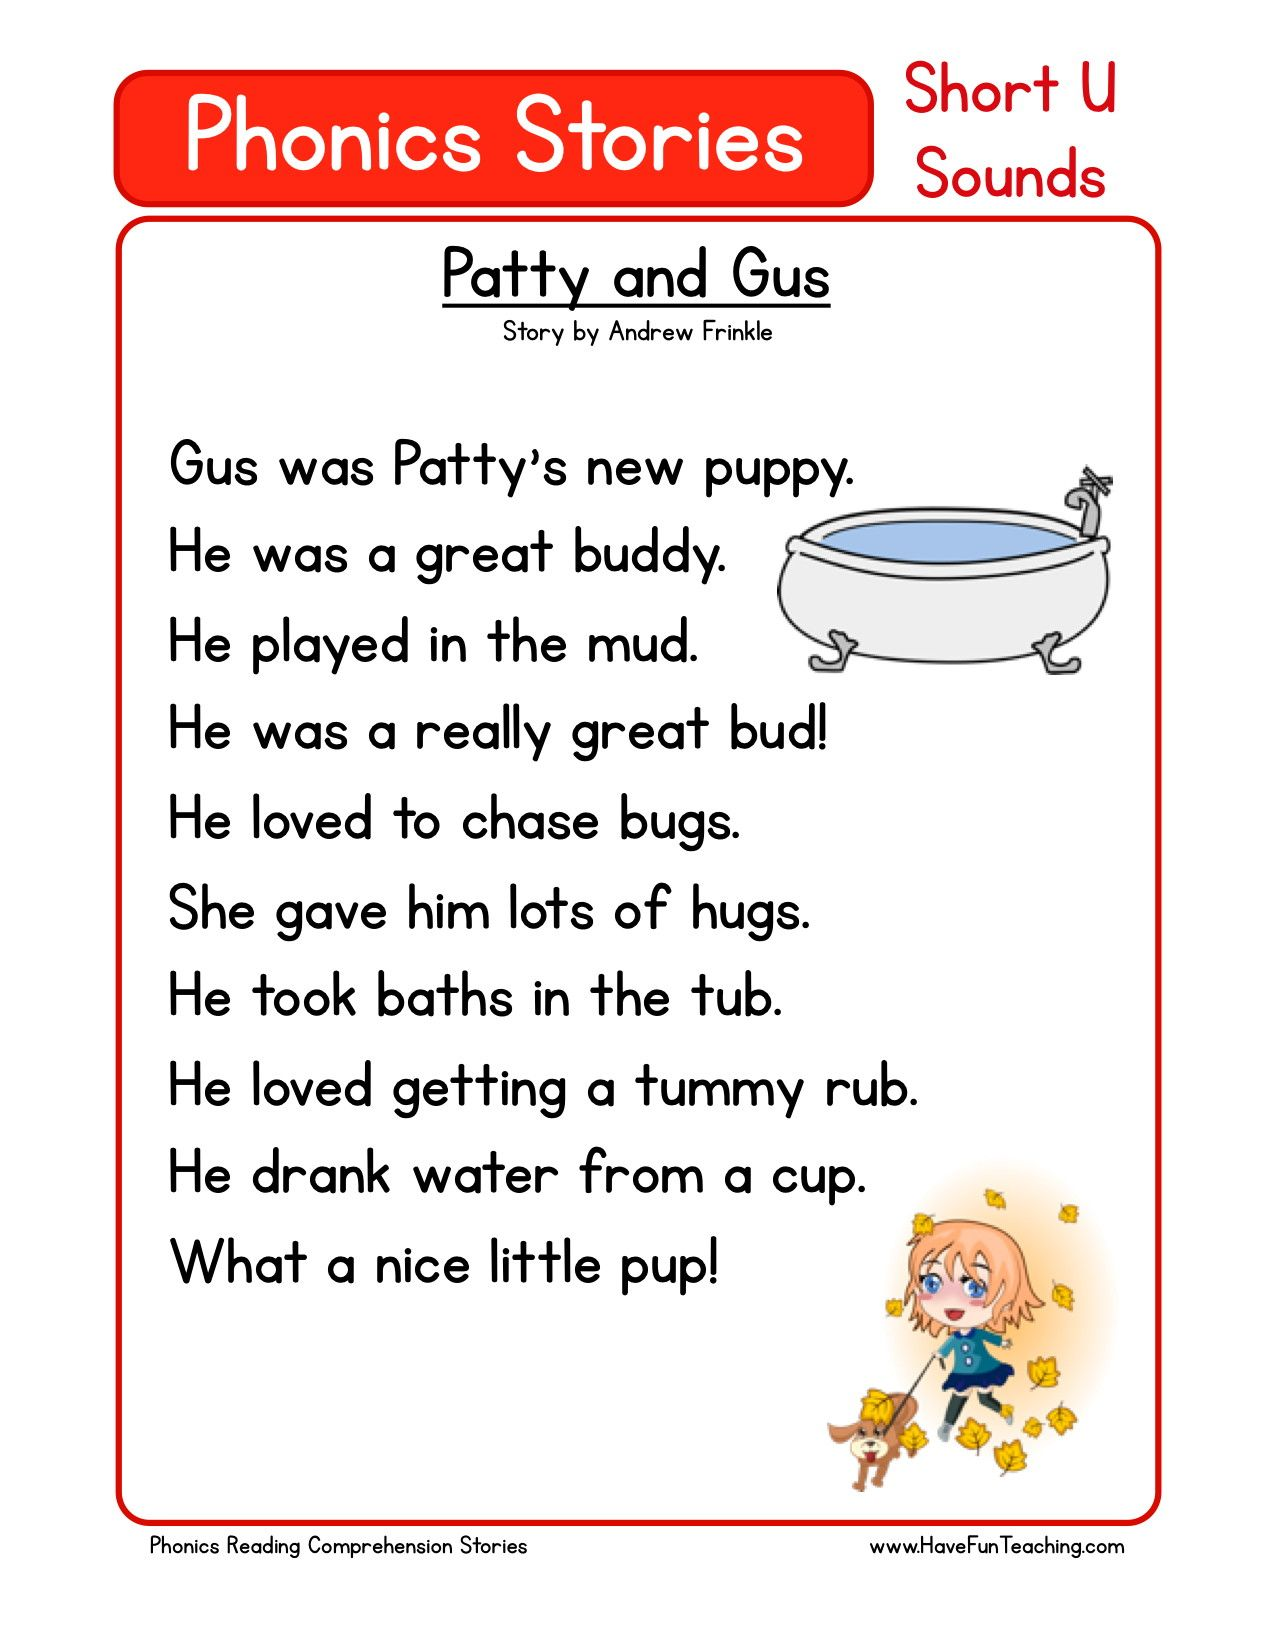 Reading Comprehension Worksheet - Patty and Gus   Phonics reading passages [ 1650 x 1275 Pixel ]